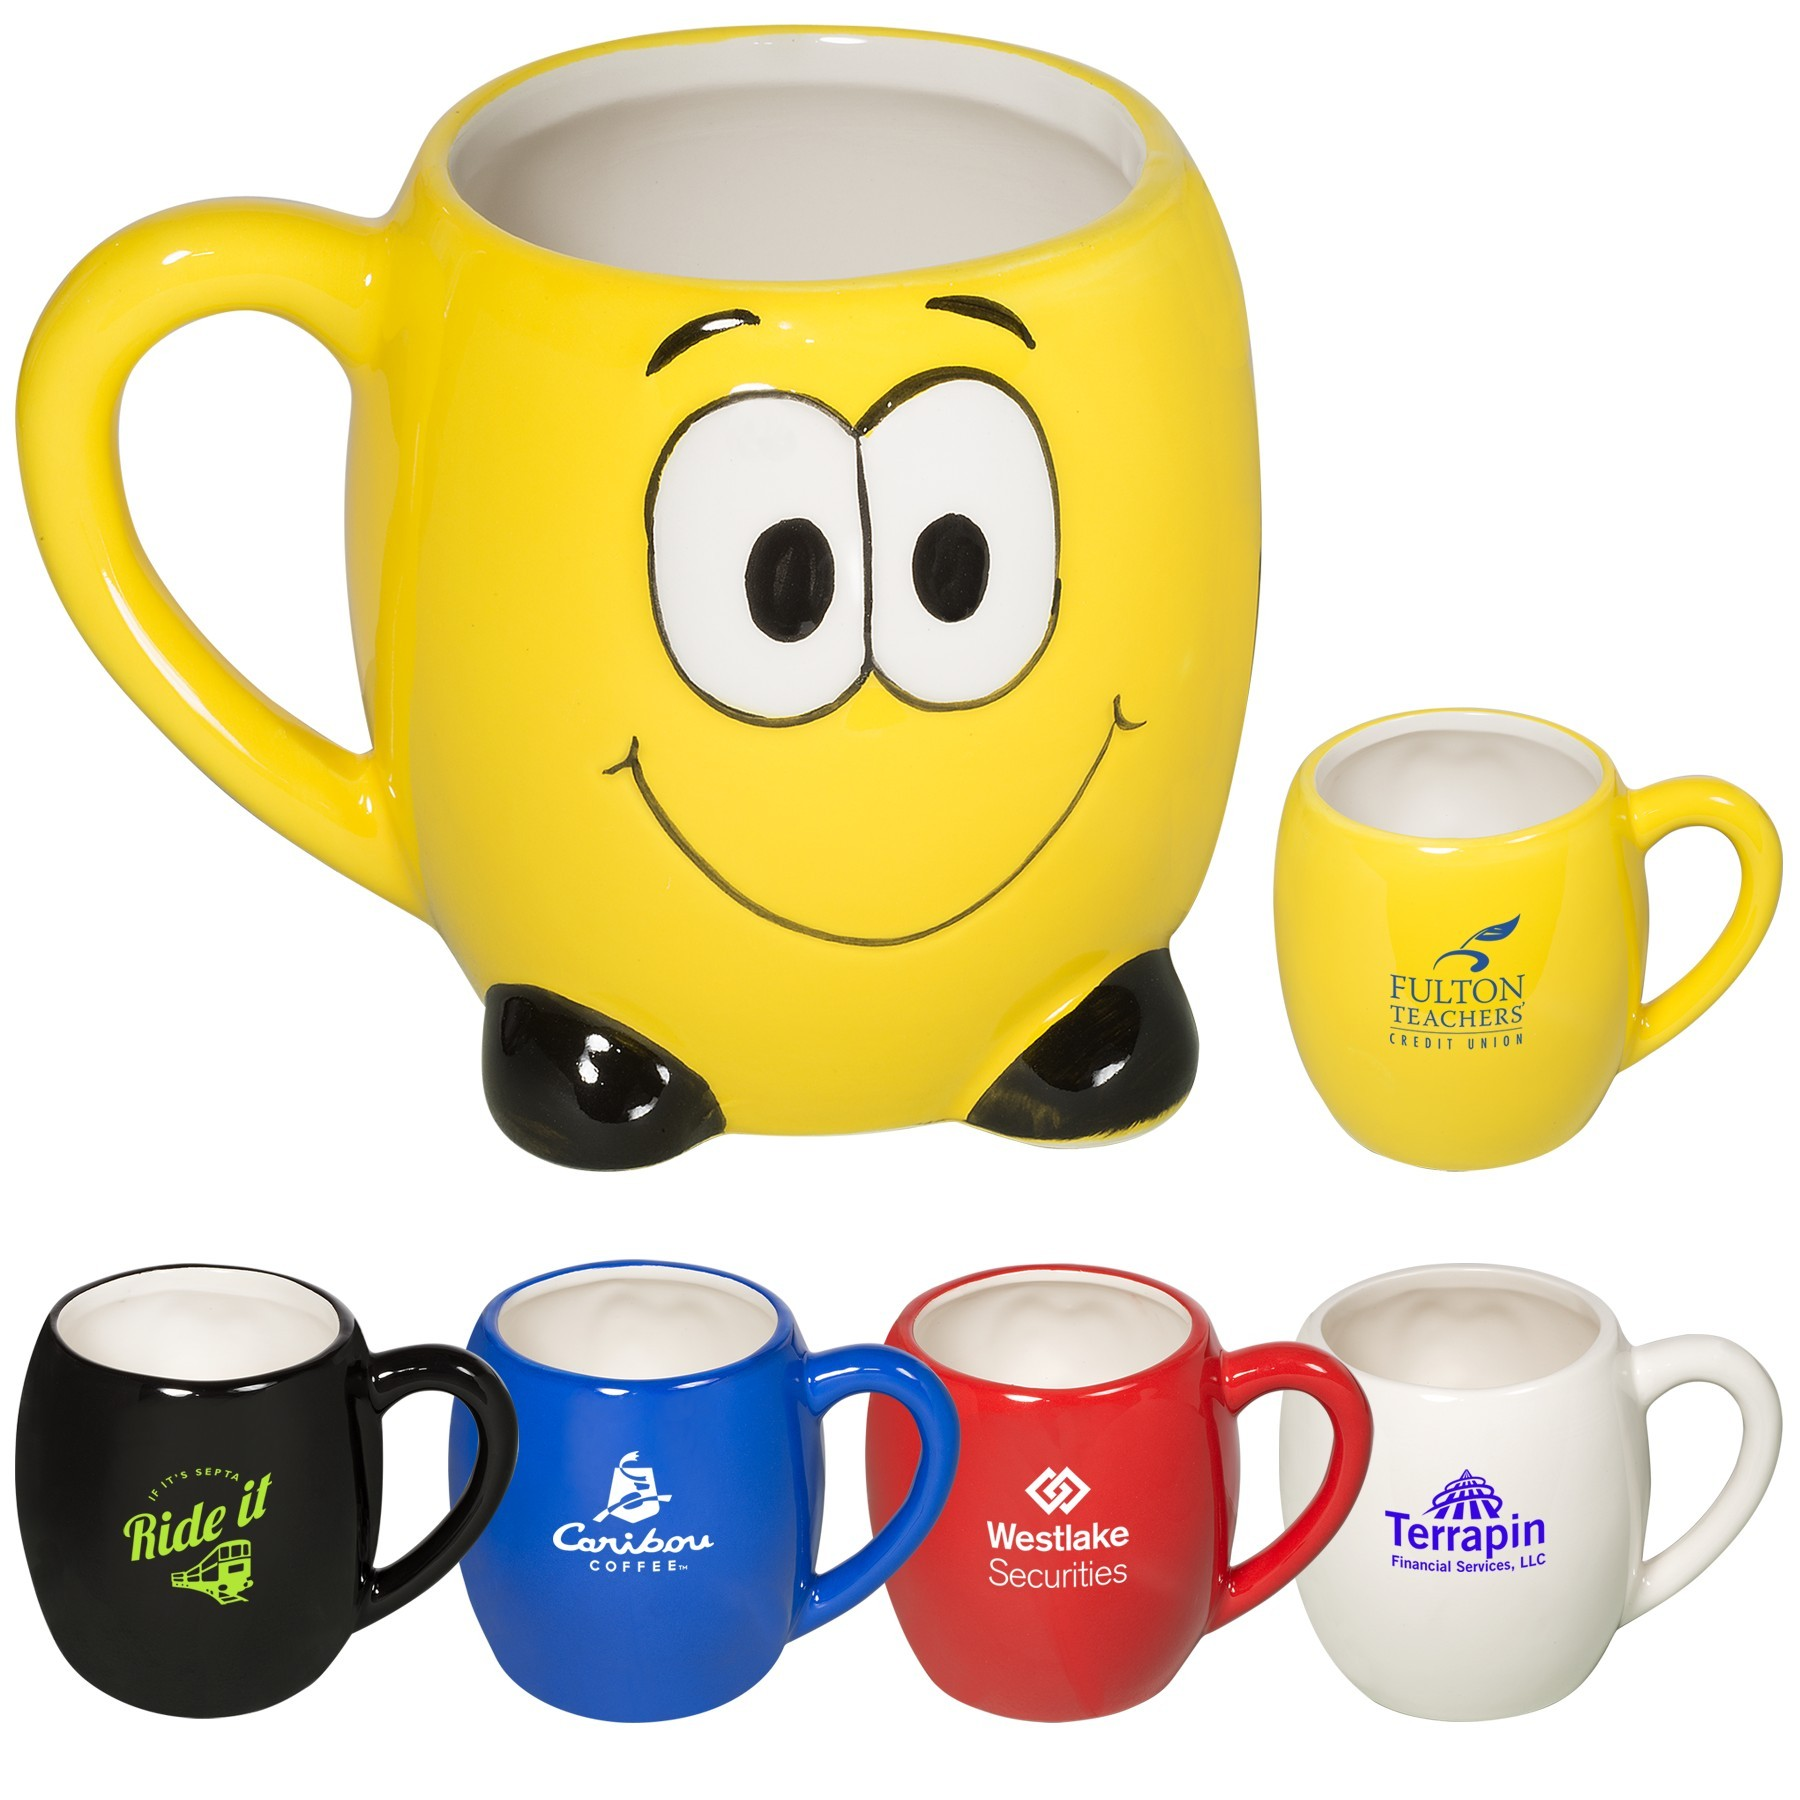 14 oz. Coffee Mug - Goofy Group™